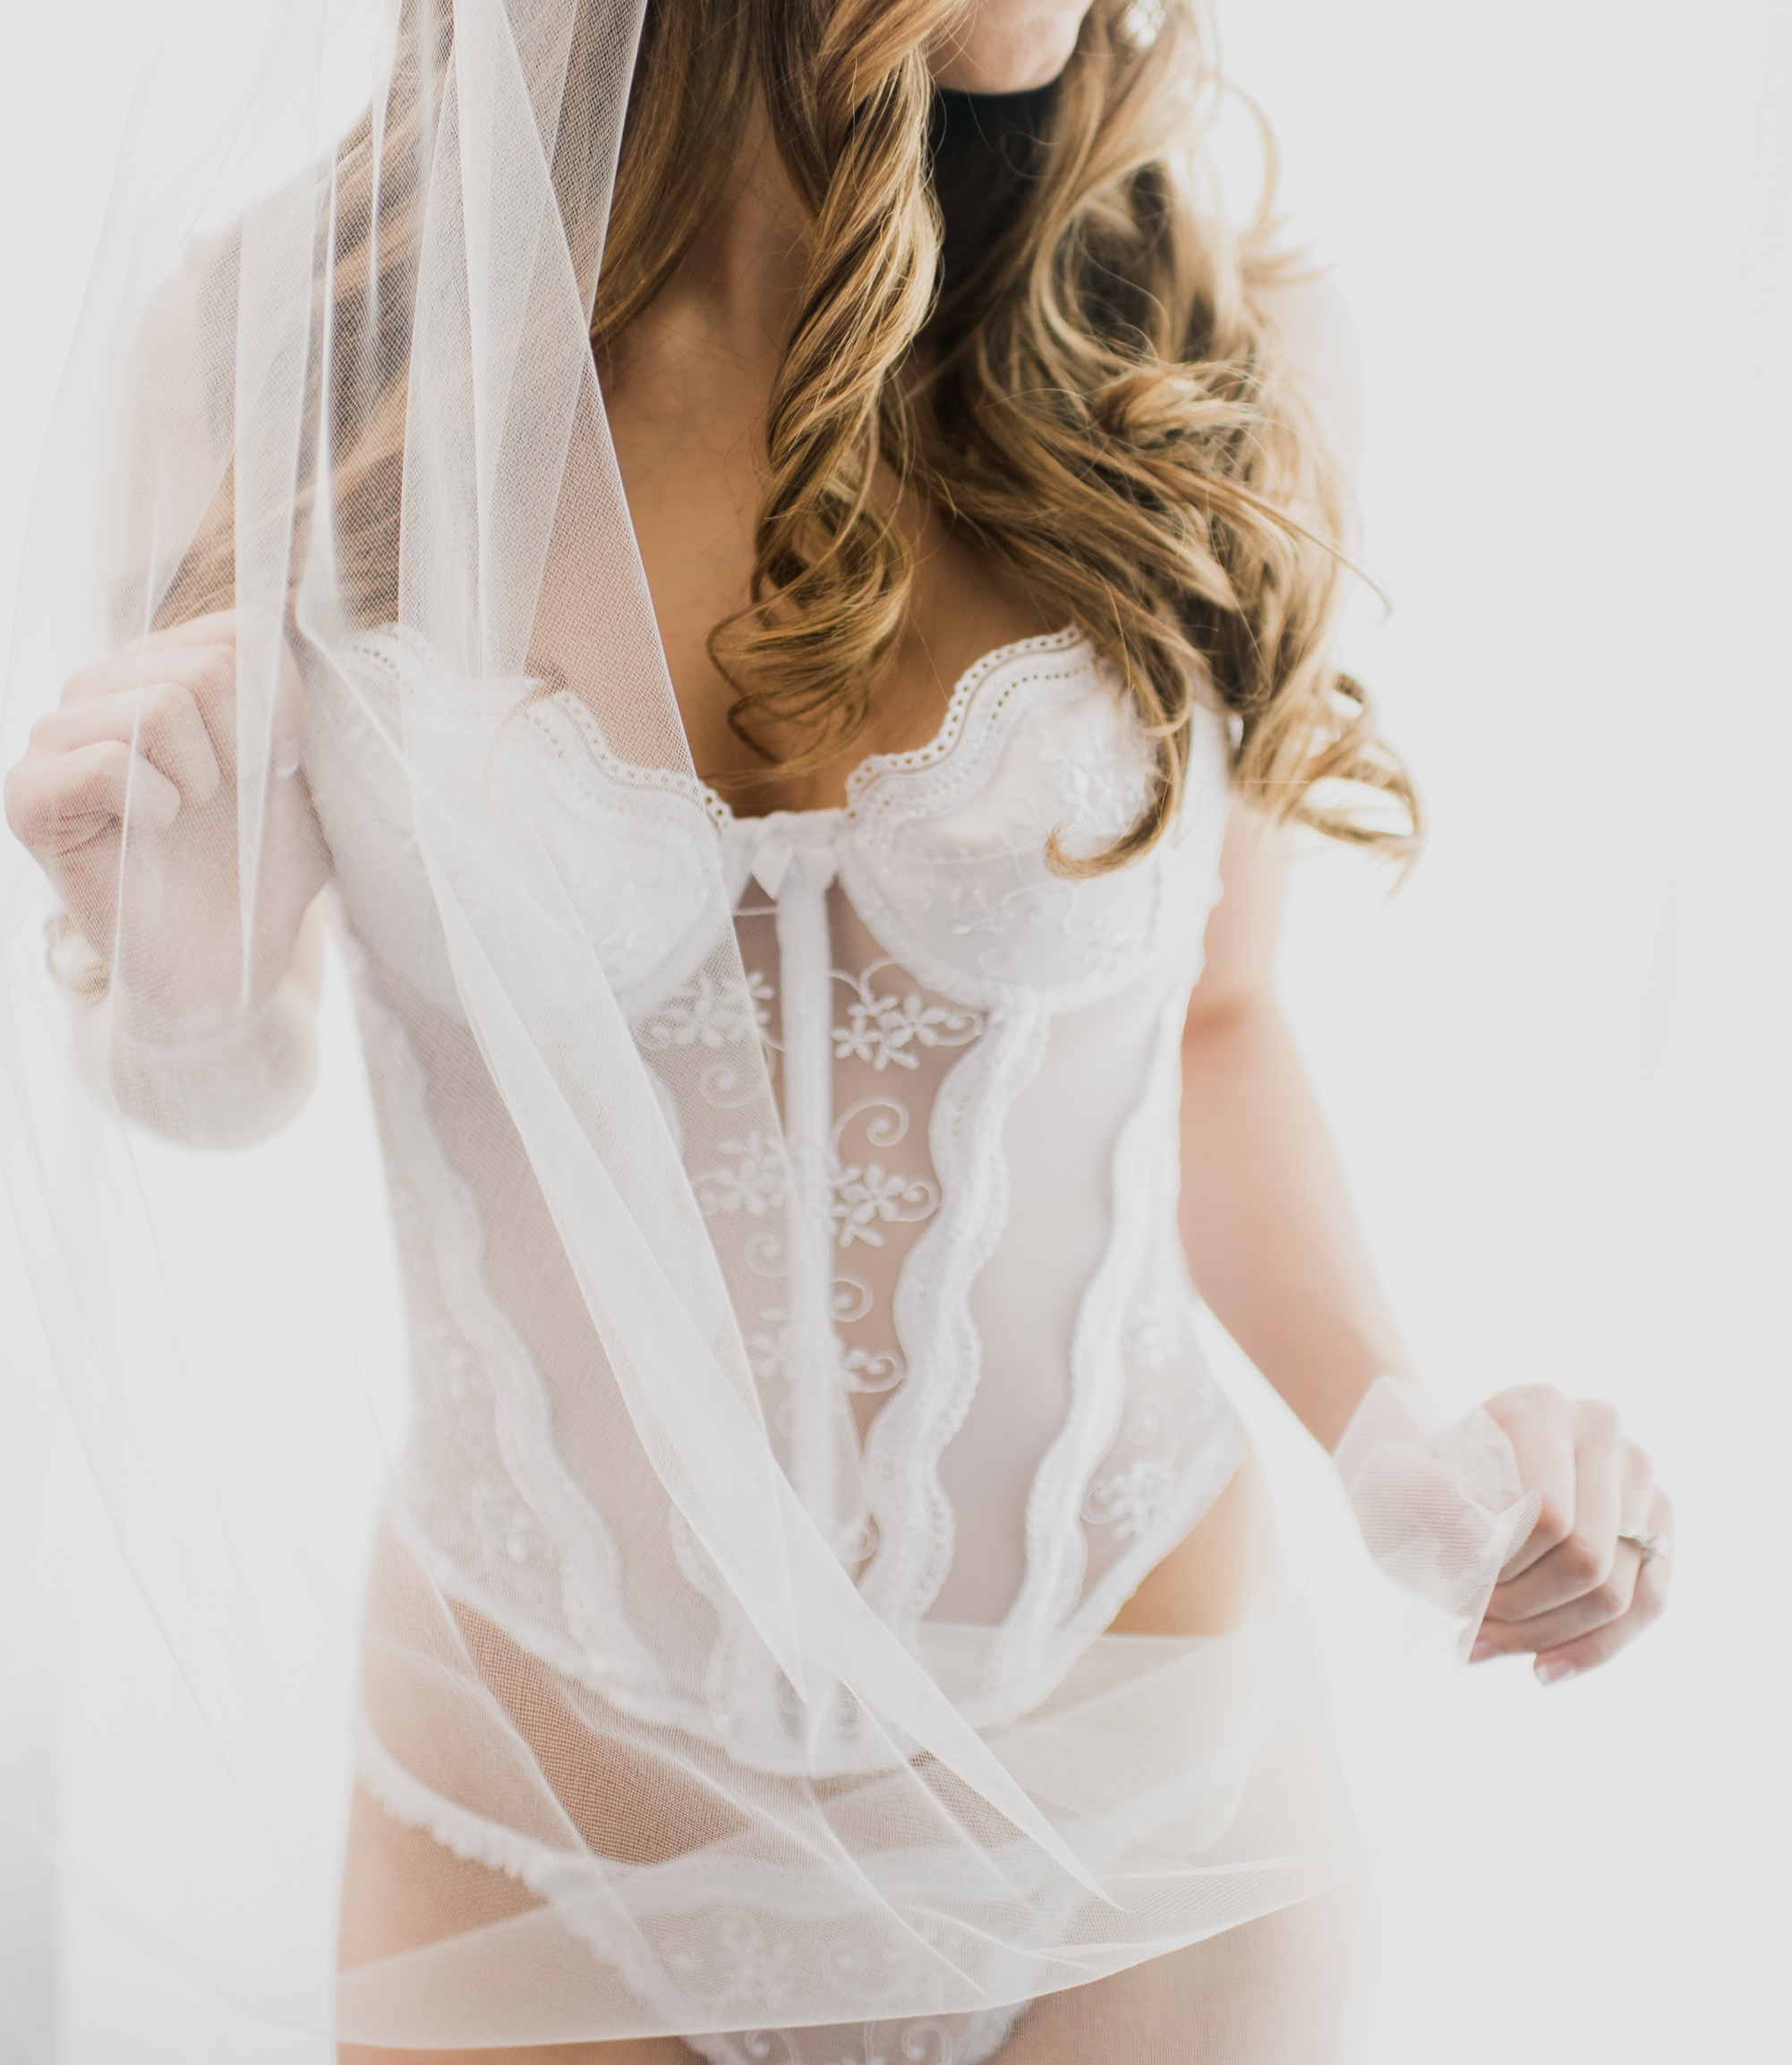 NORTH CAROLINA BOUDOIR PHOTOGRAPHER